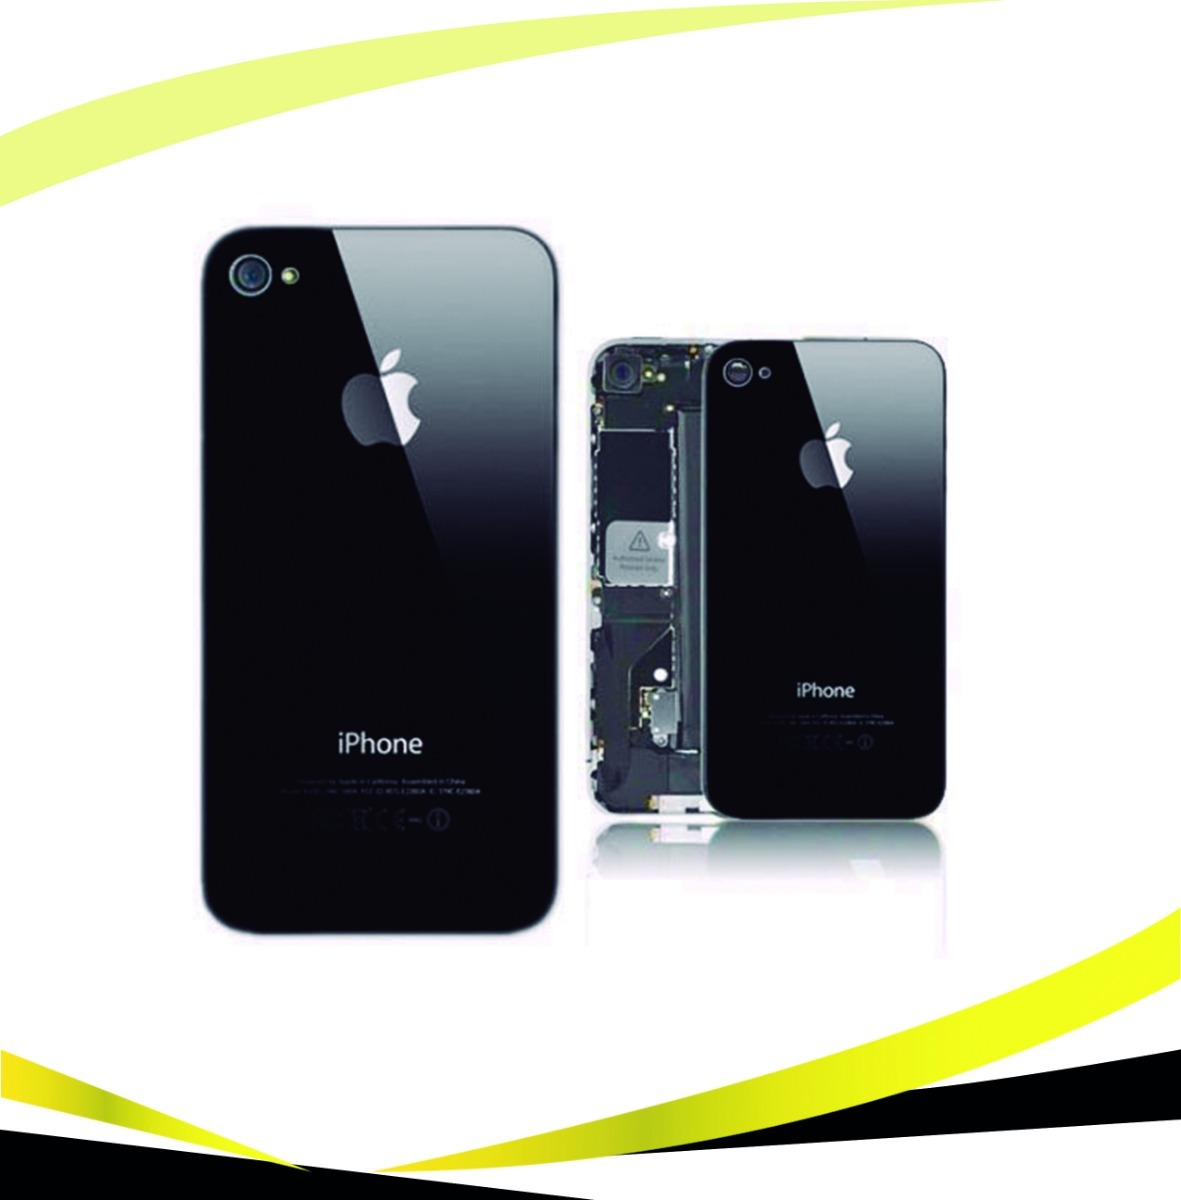 da021795b7a Tapa Trasera iPhone 4 / 4s Apple Cristal Negro Blanco. - Bs. 16.000 ...